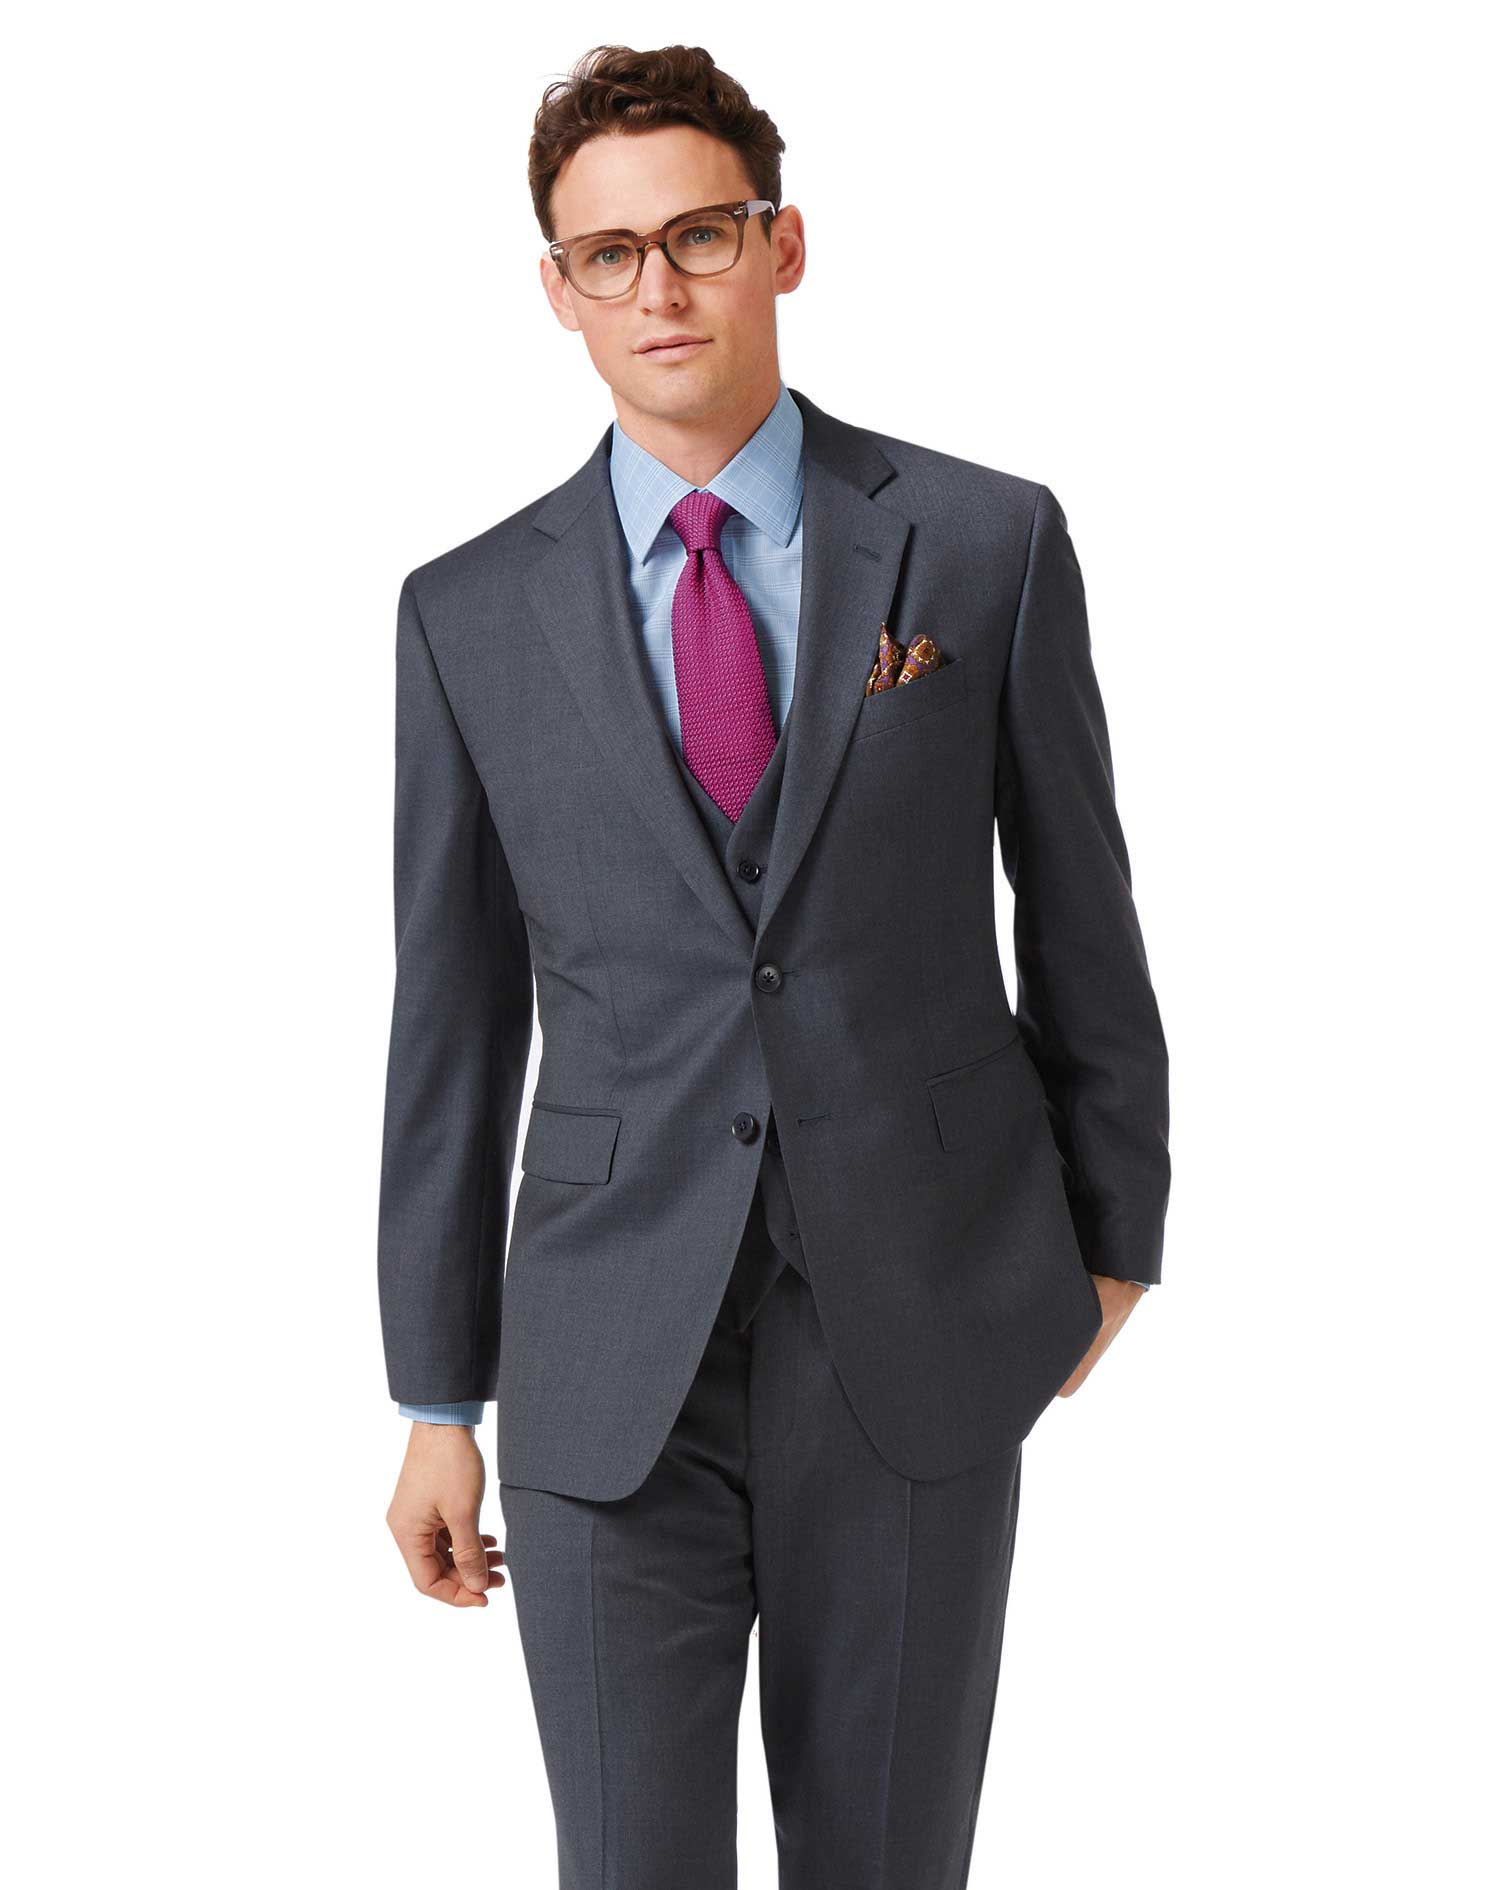 Steel Blue Classic Fit Twill Business Suit Wool Jacket Size 40 Long by Charles Tyrwhitt